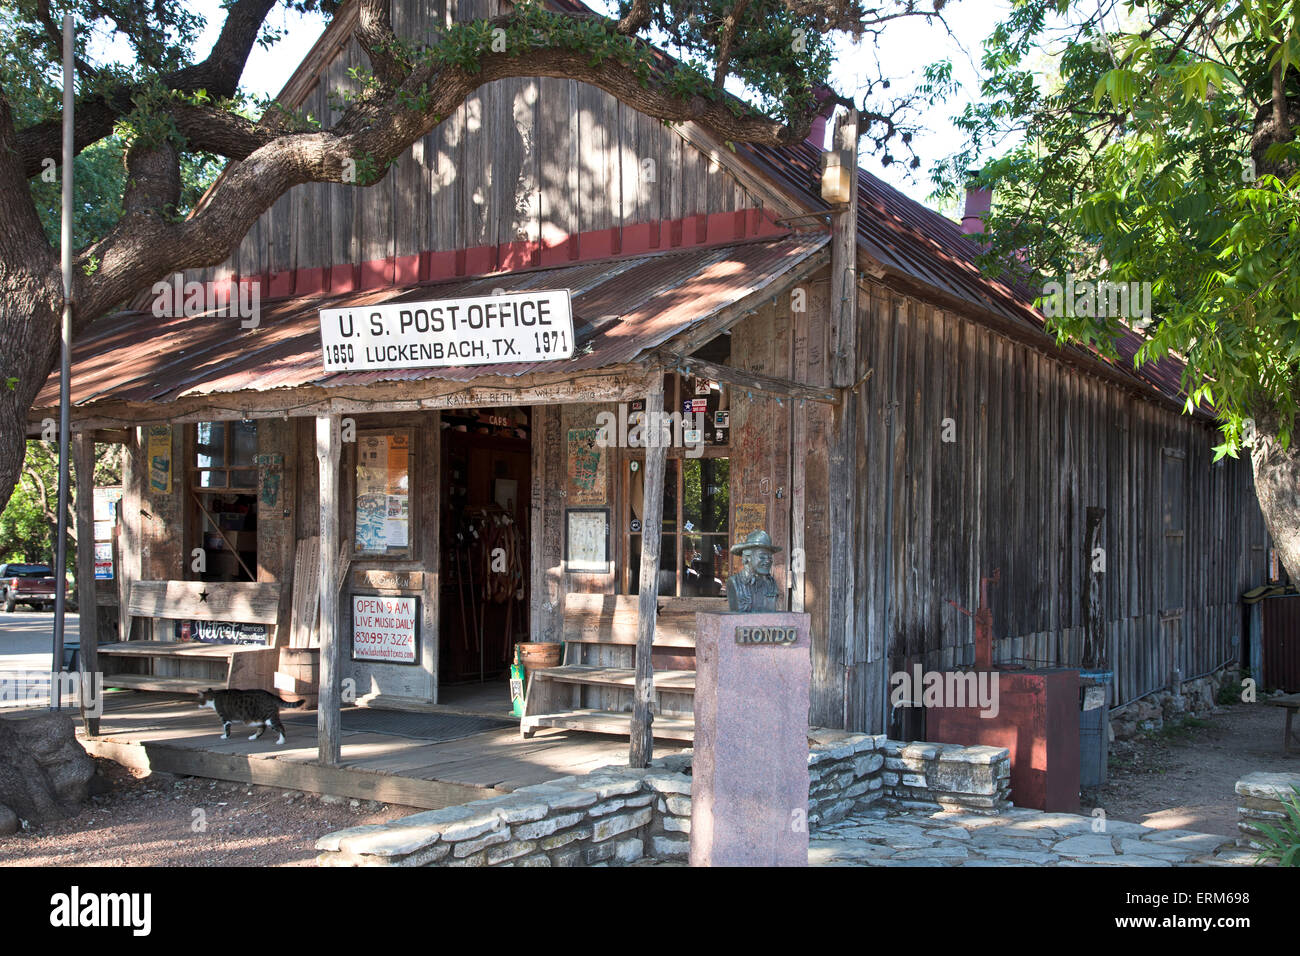 Built in 1850, this unpainted frontier-style building served as Luckenbach's postoffice until 1971. Bust: Hondo - Stock Image